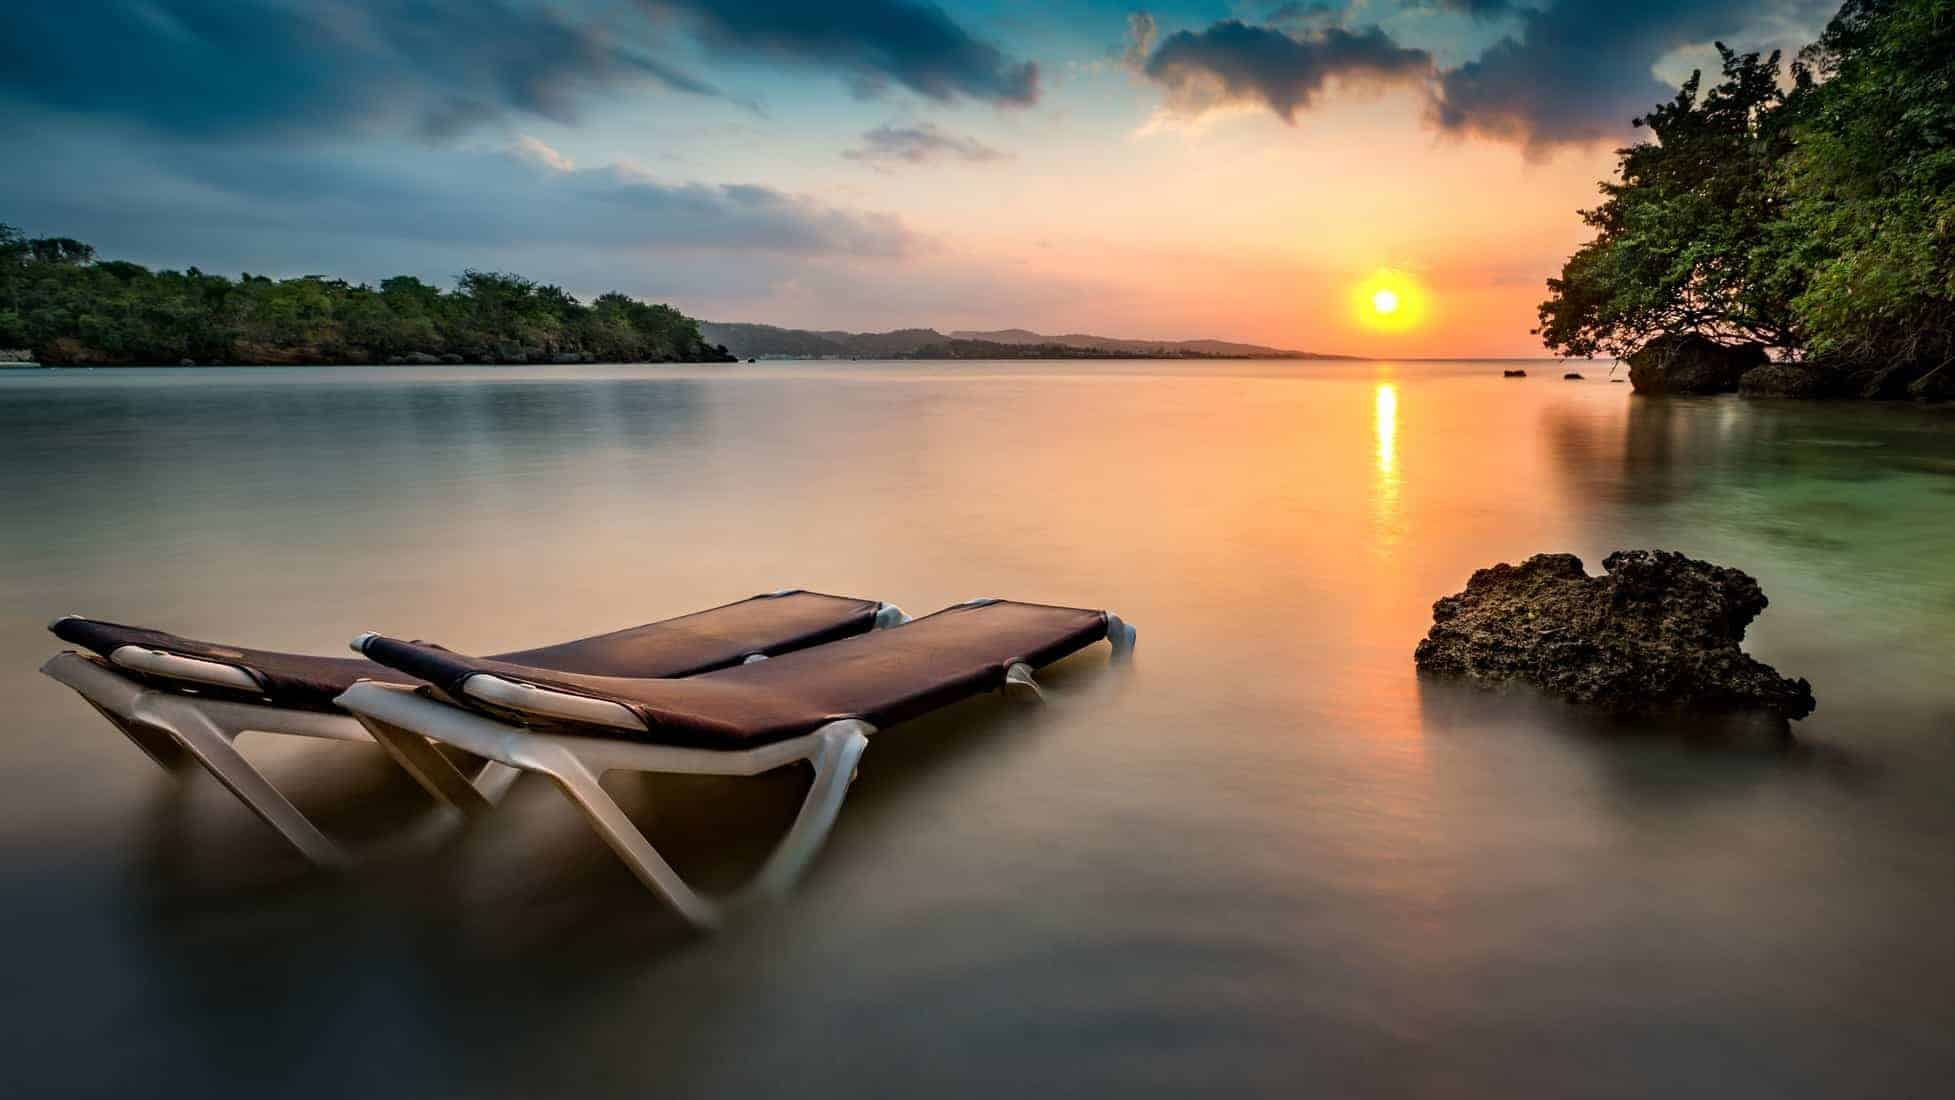 Sunset with beach chairs on a tropical beach in Jamaica.